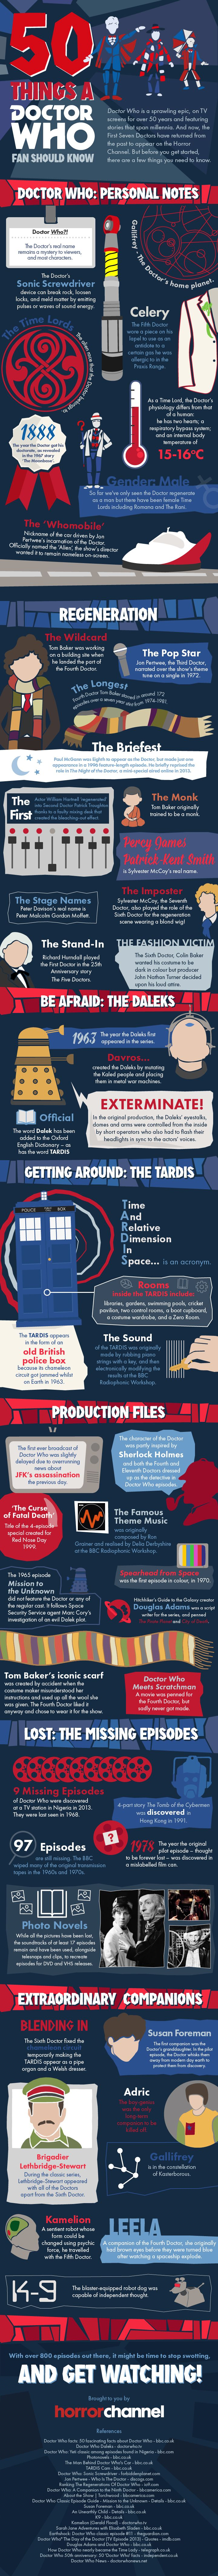 50 things a Doctor Who fan should know - Imgur